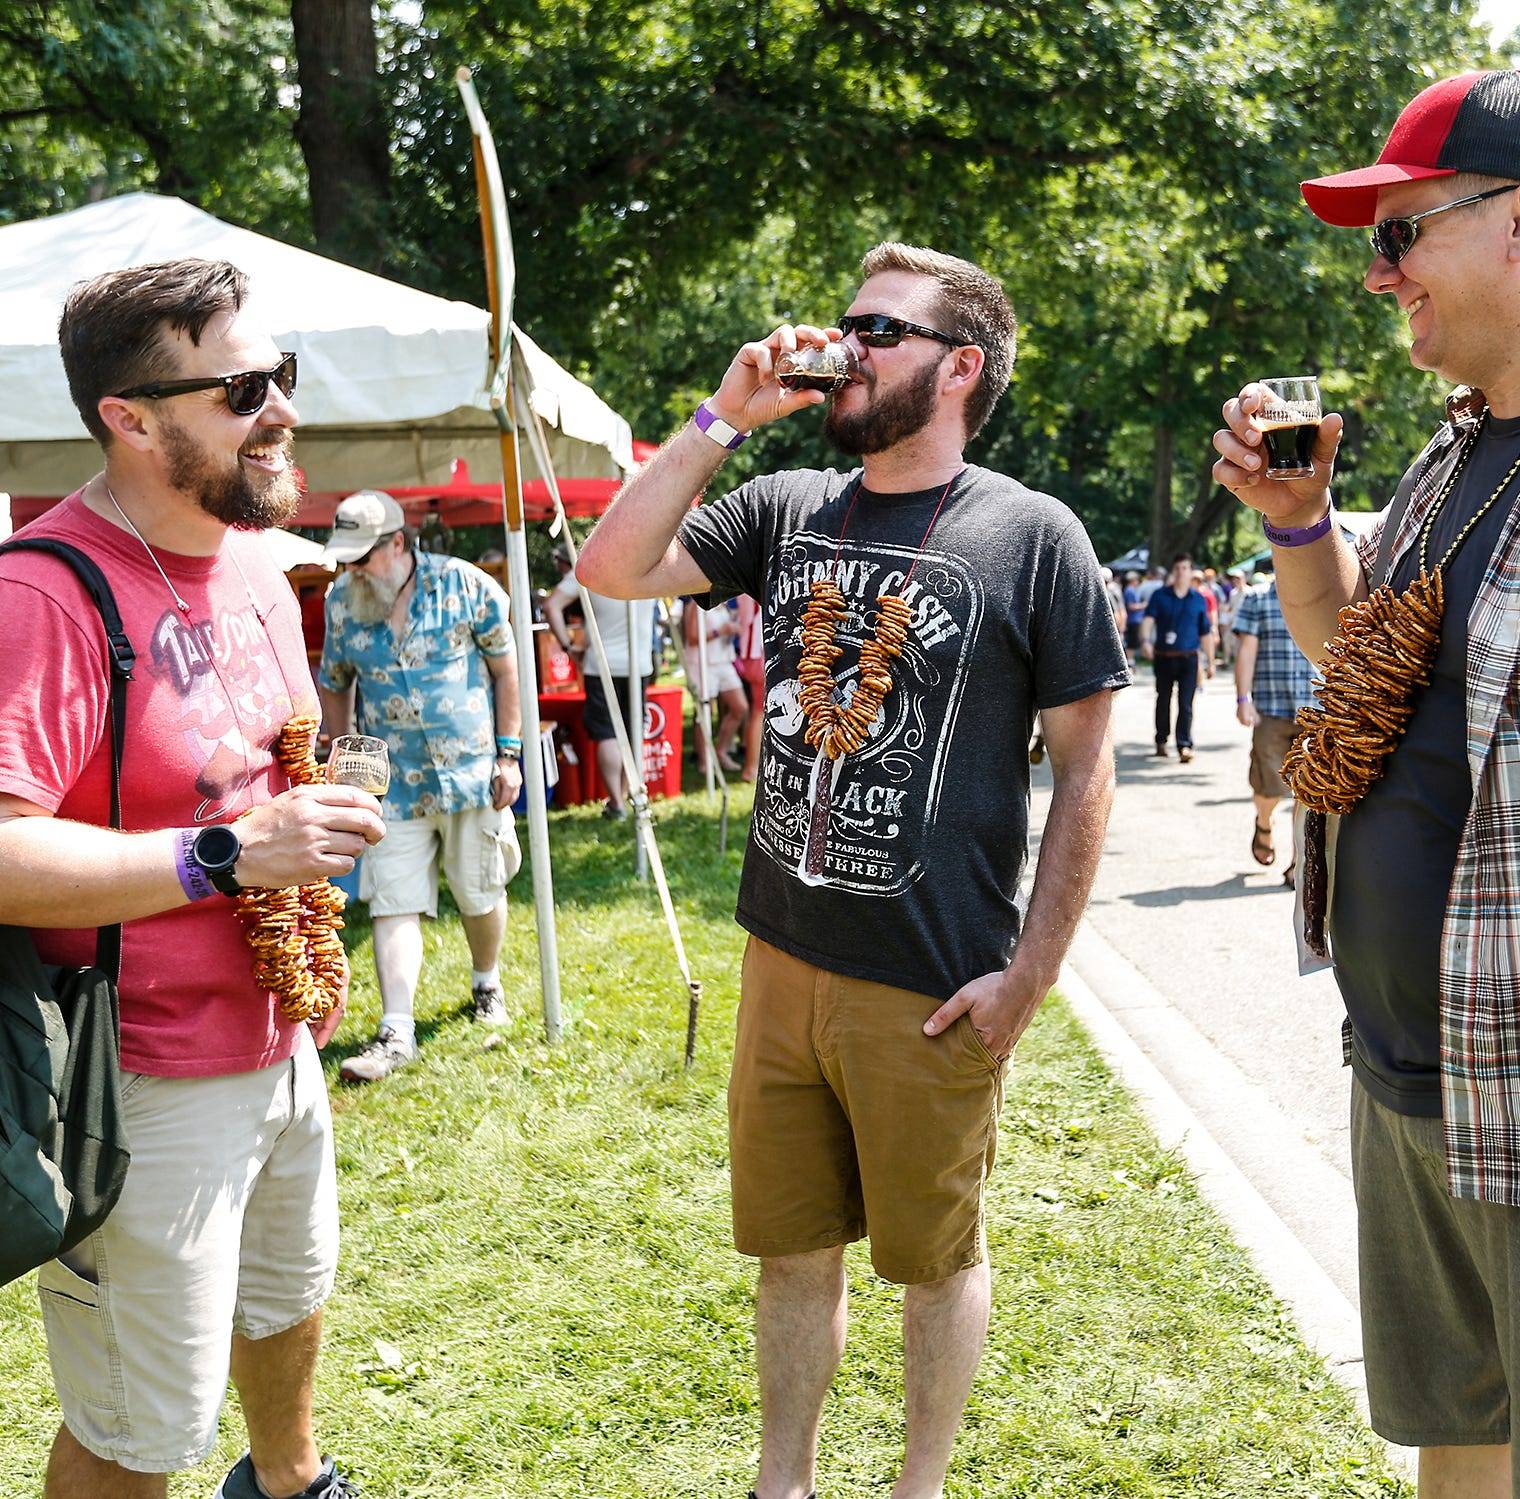 Madison's Great Taste of the Midwest brings craft beer showcase to Wisconsin